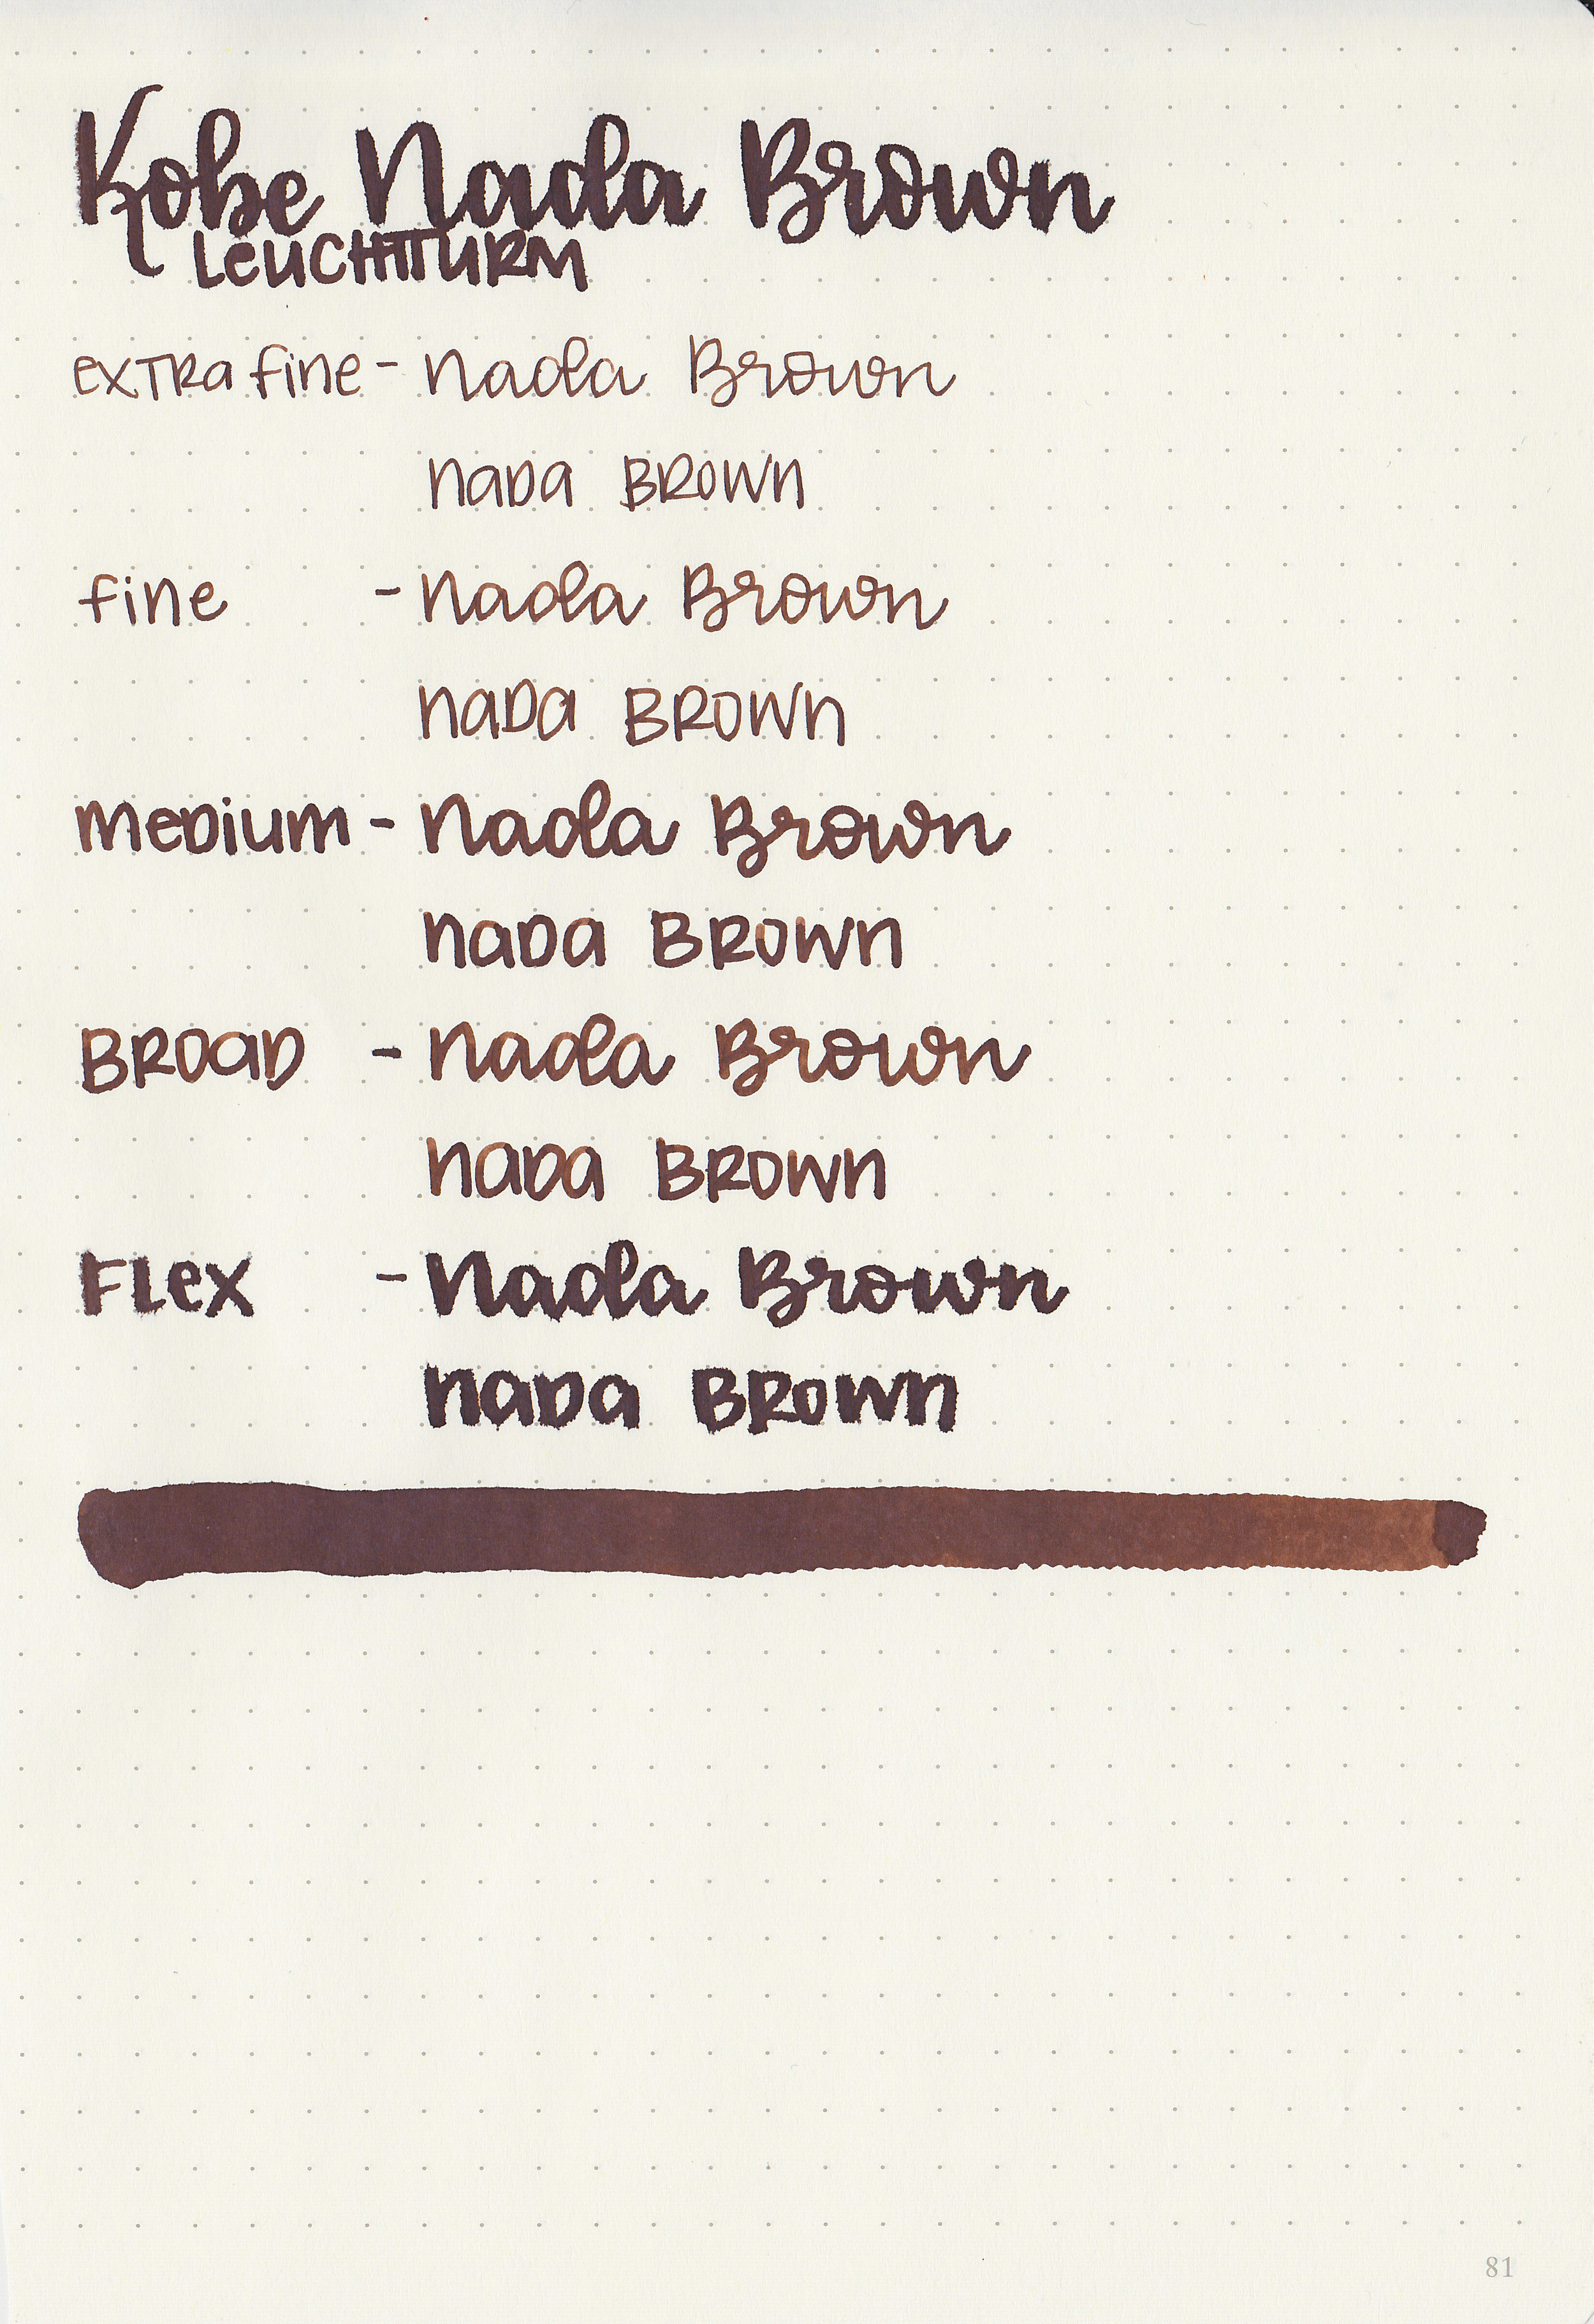 nk-nada-brown-9.jpg